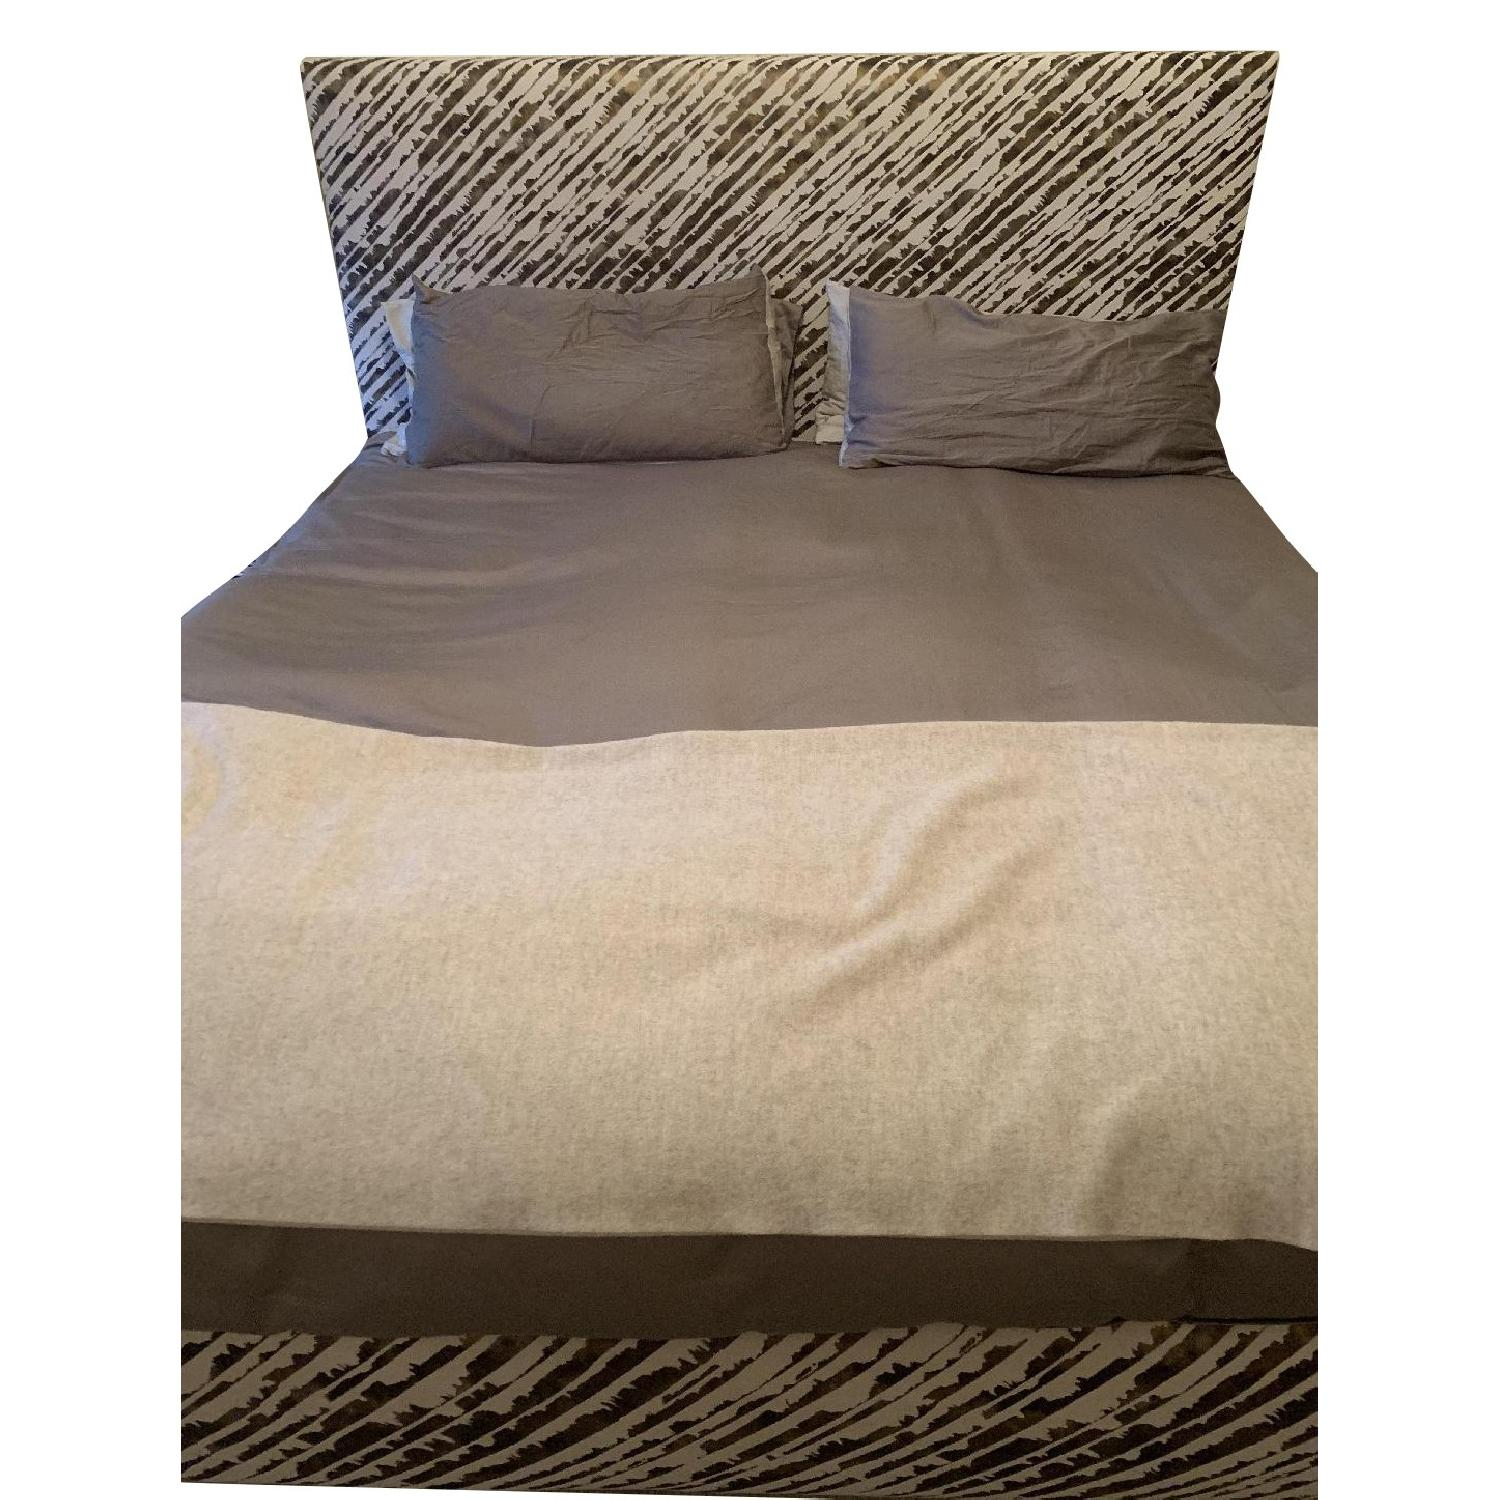 ABC Carpet and Home Donghia Fabric Upholstered Bed